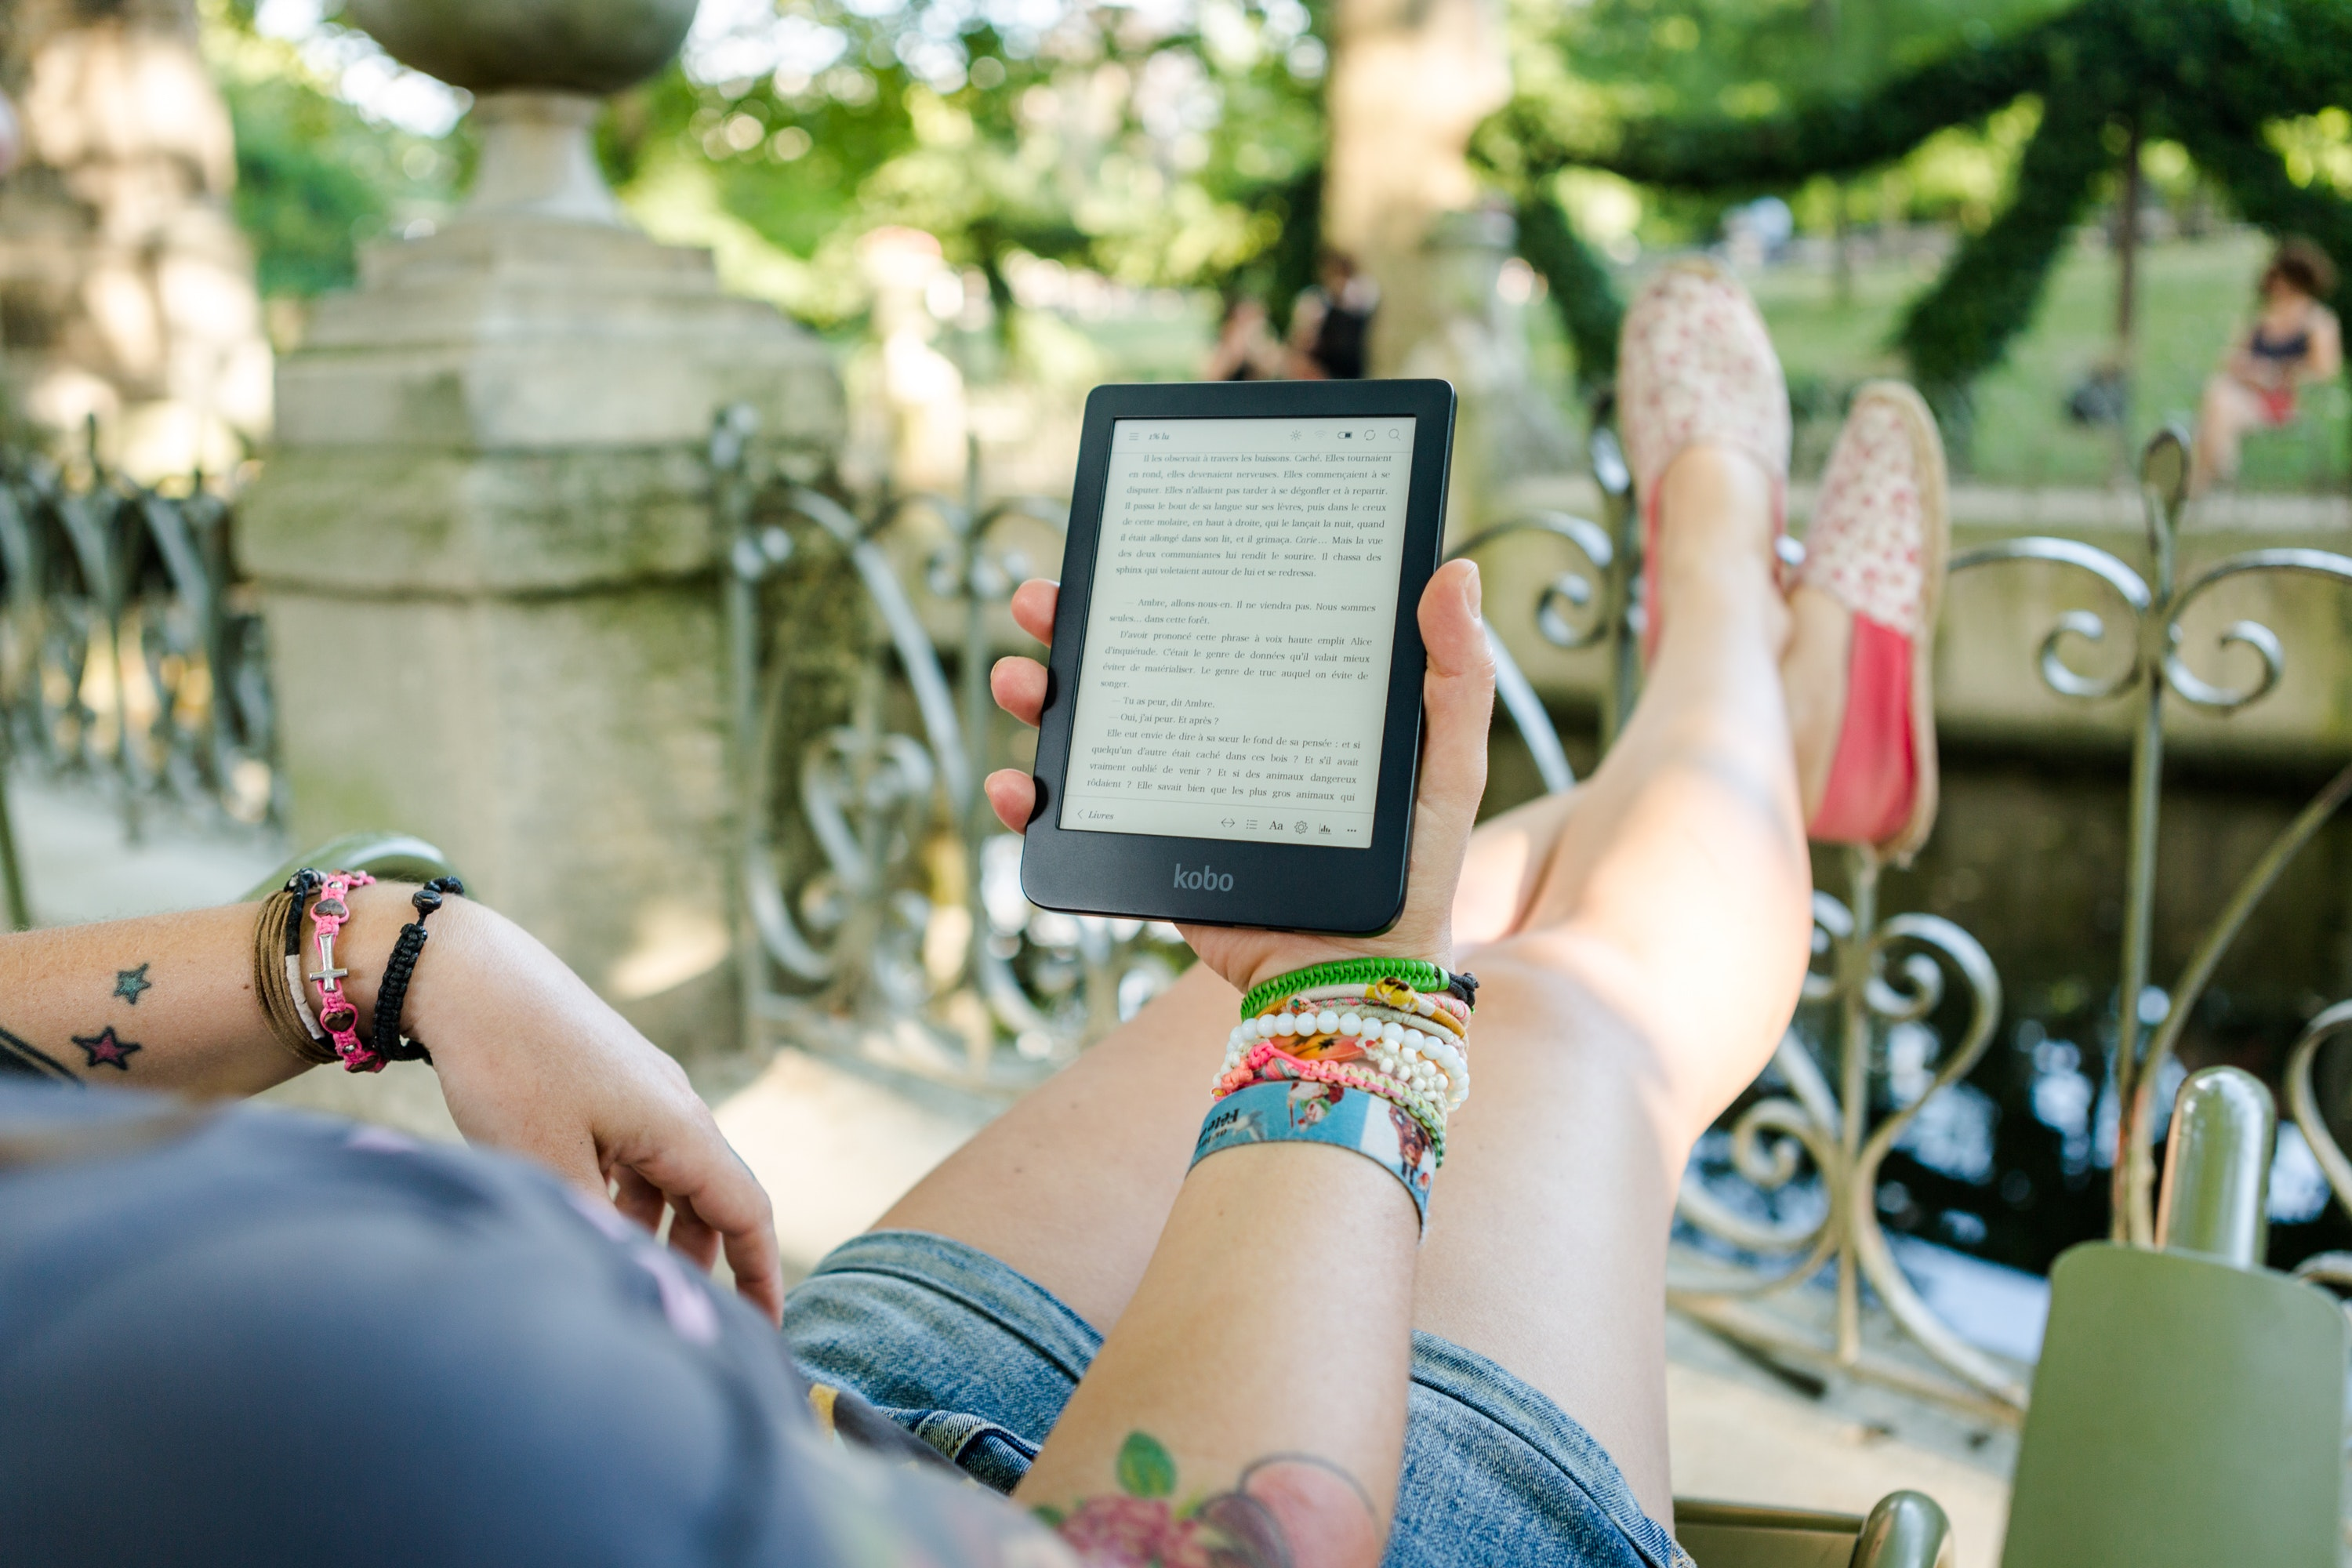 person-holding-person-holding-kobo-e-reader-1324859